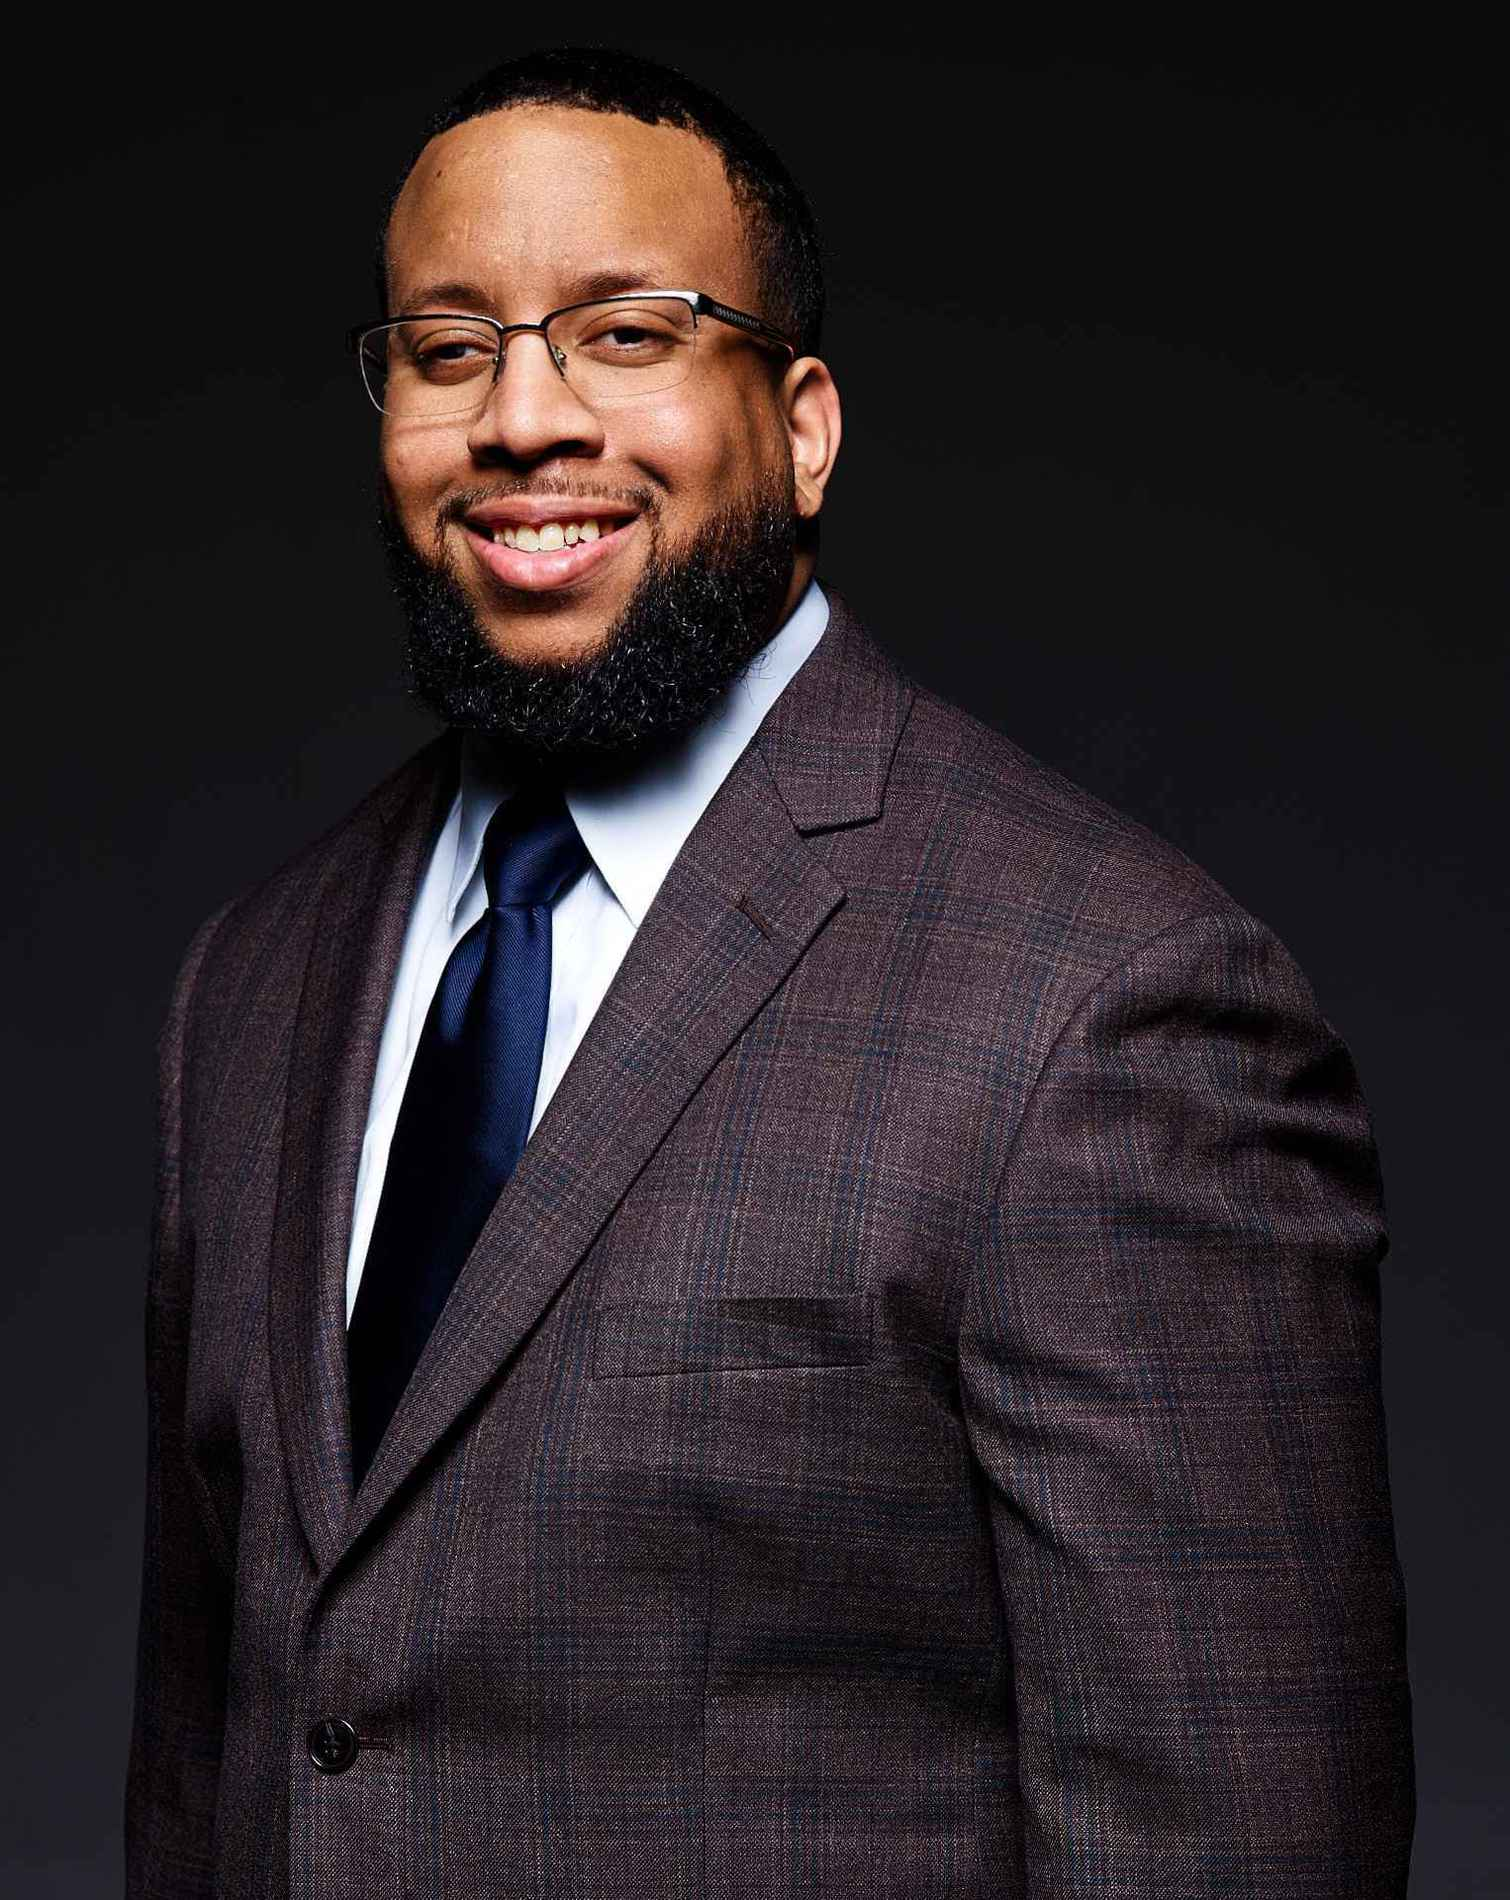 Photo of Aaron D. Hudson - Morgan Stanley